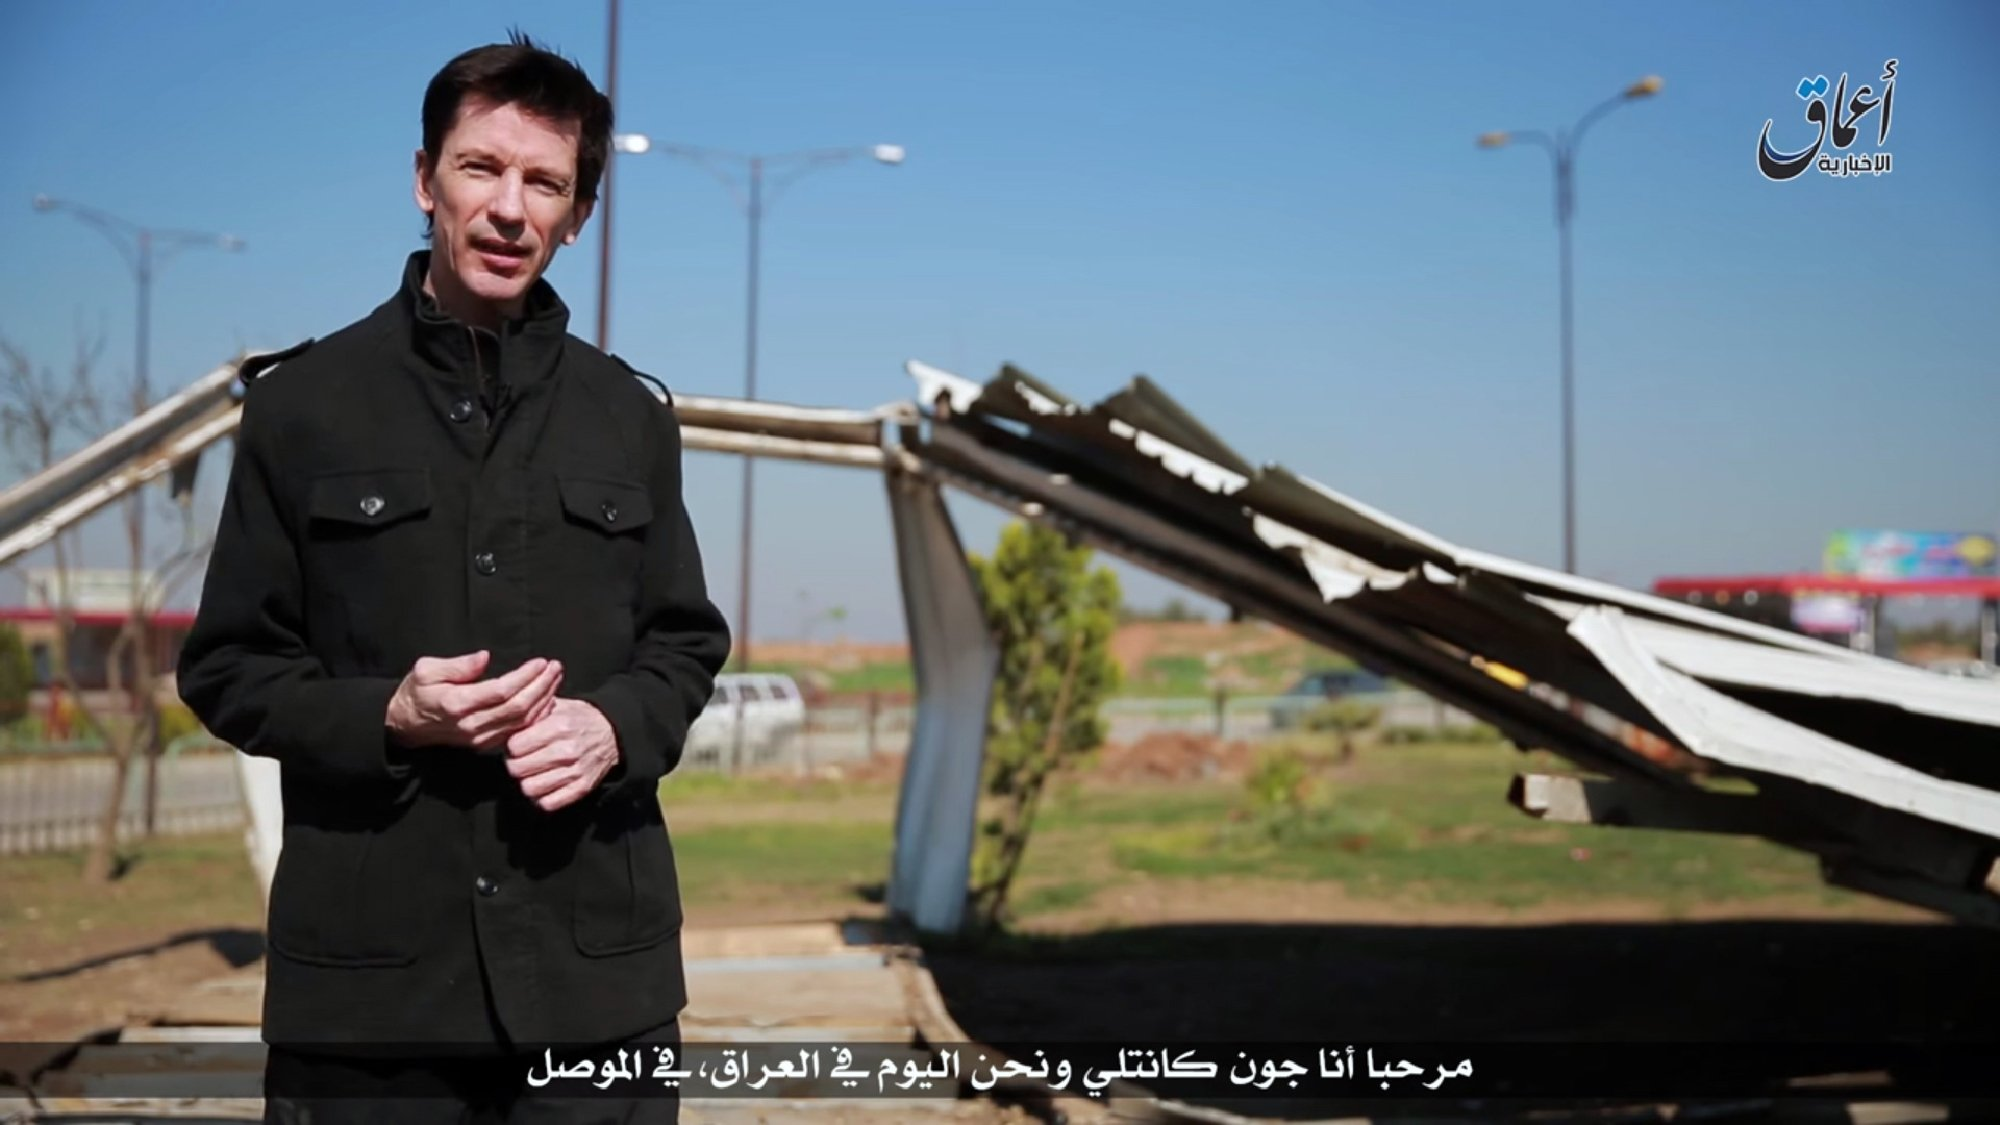 An image grab taken from a video uploaded on March 19, 2016 by Amaq News Agency, a Youtube channel which posts videos from areas under the Islamic State (IS) group's control, shows British journalist John Cantlie, who is being held prisoner by IS, speaking to the camera in the style of a news report supposedly filmed in the militants' northern Iraqi stronghold of Mosul (AFP)